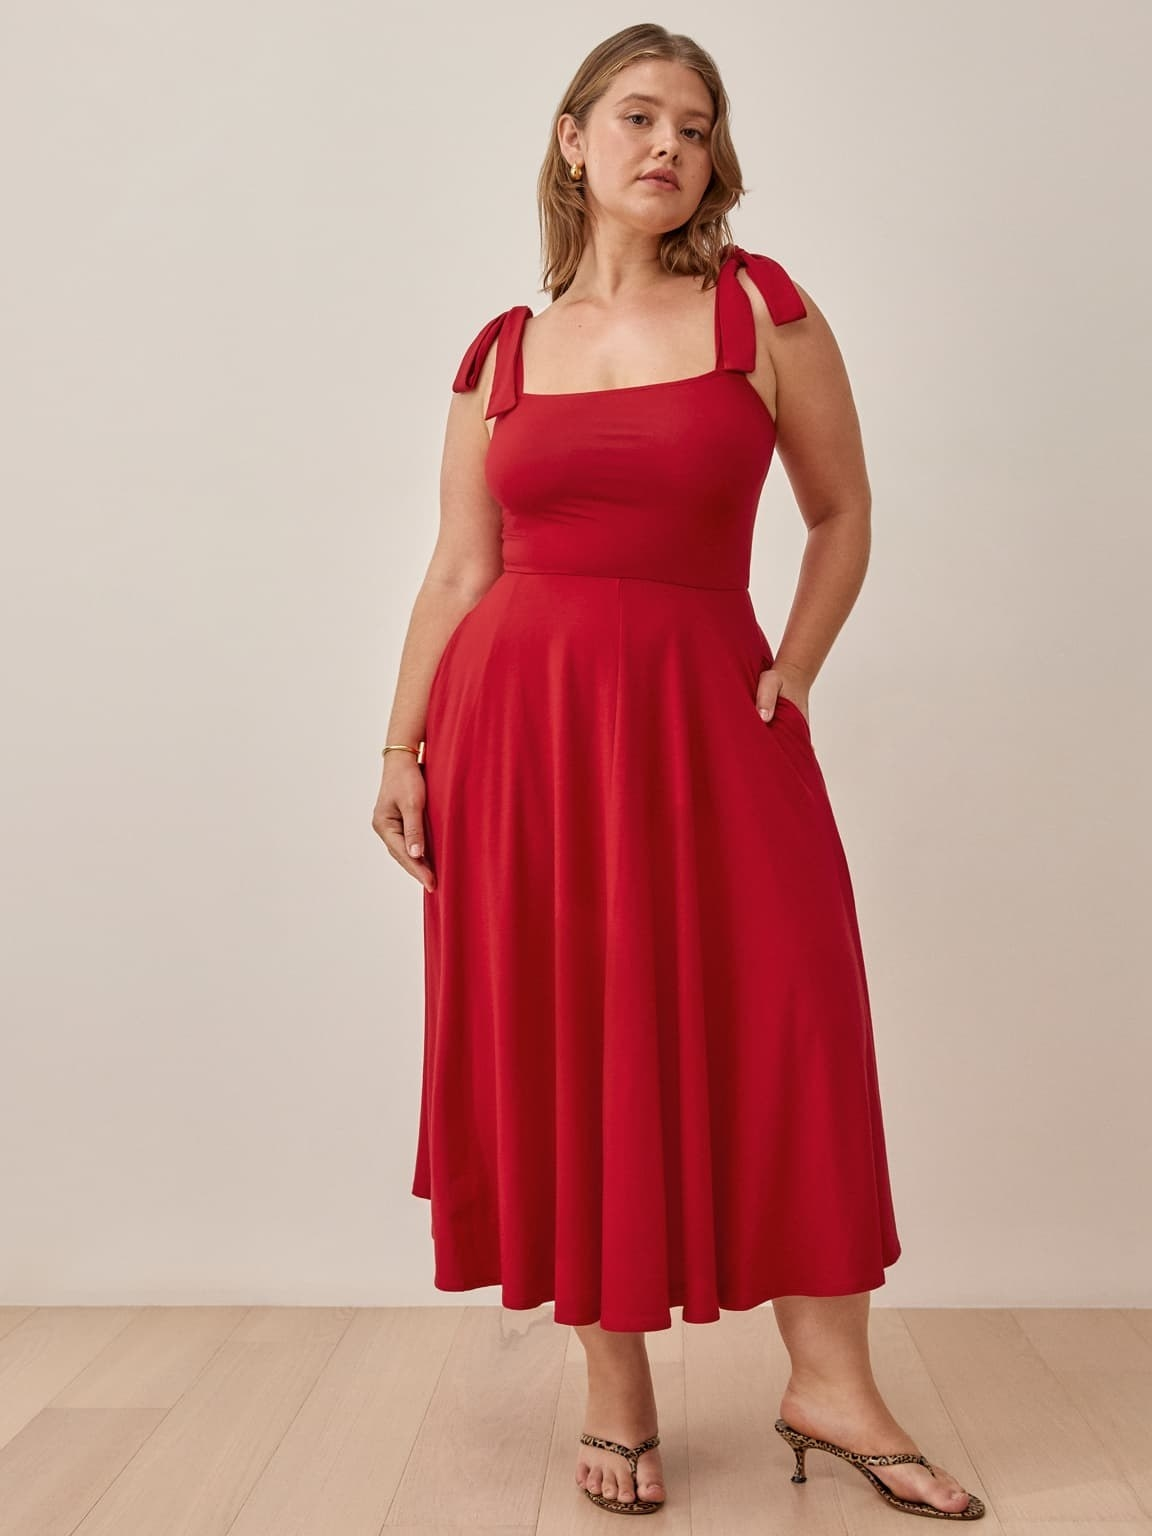 model wearing the calf-length tank dress in red with bows on top of either shoulder